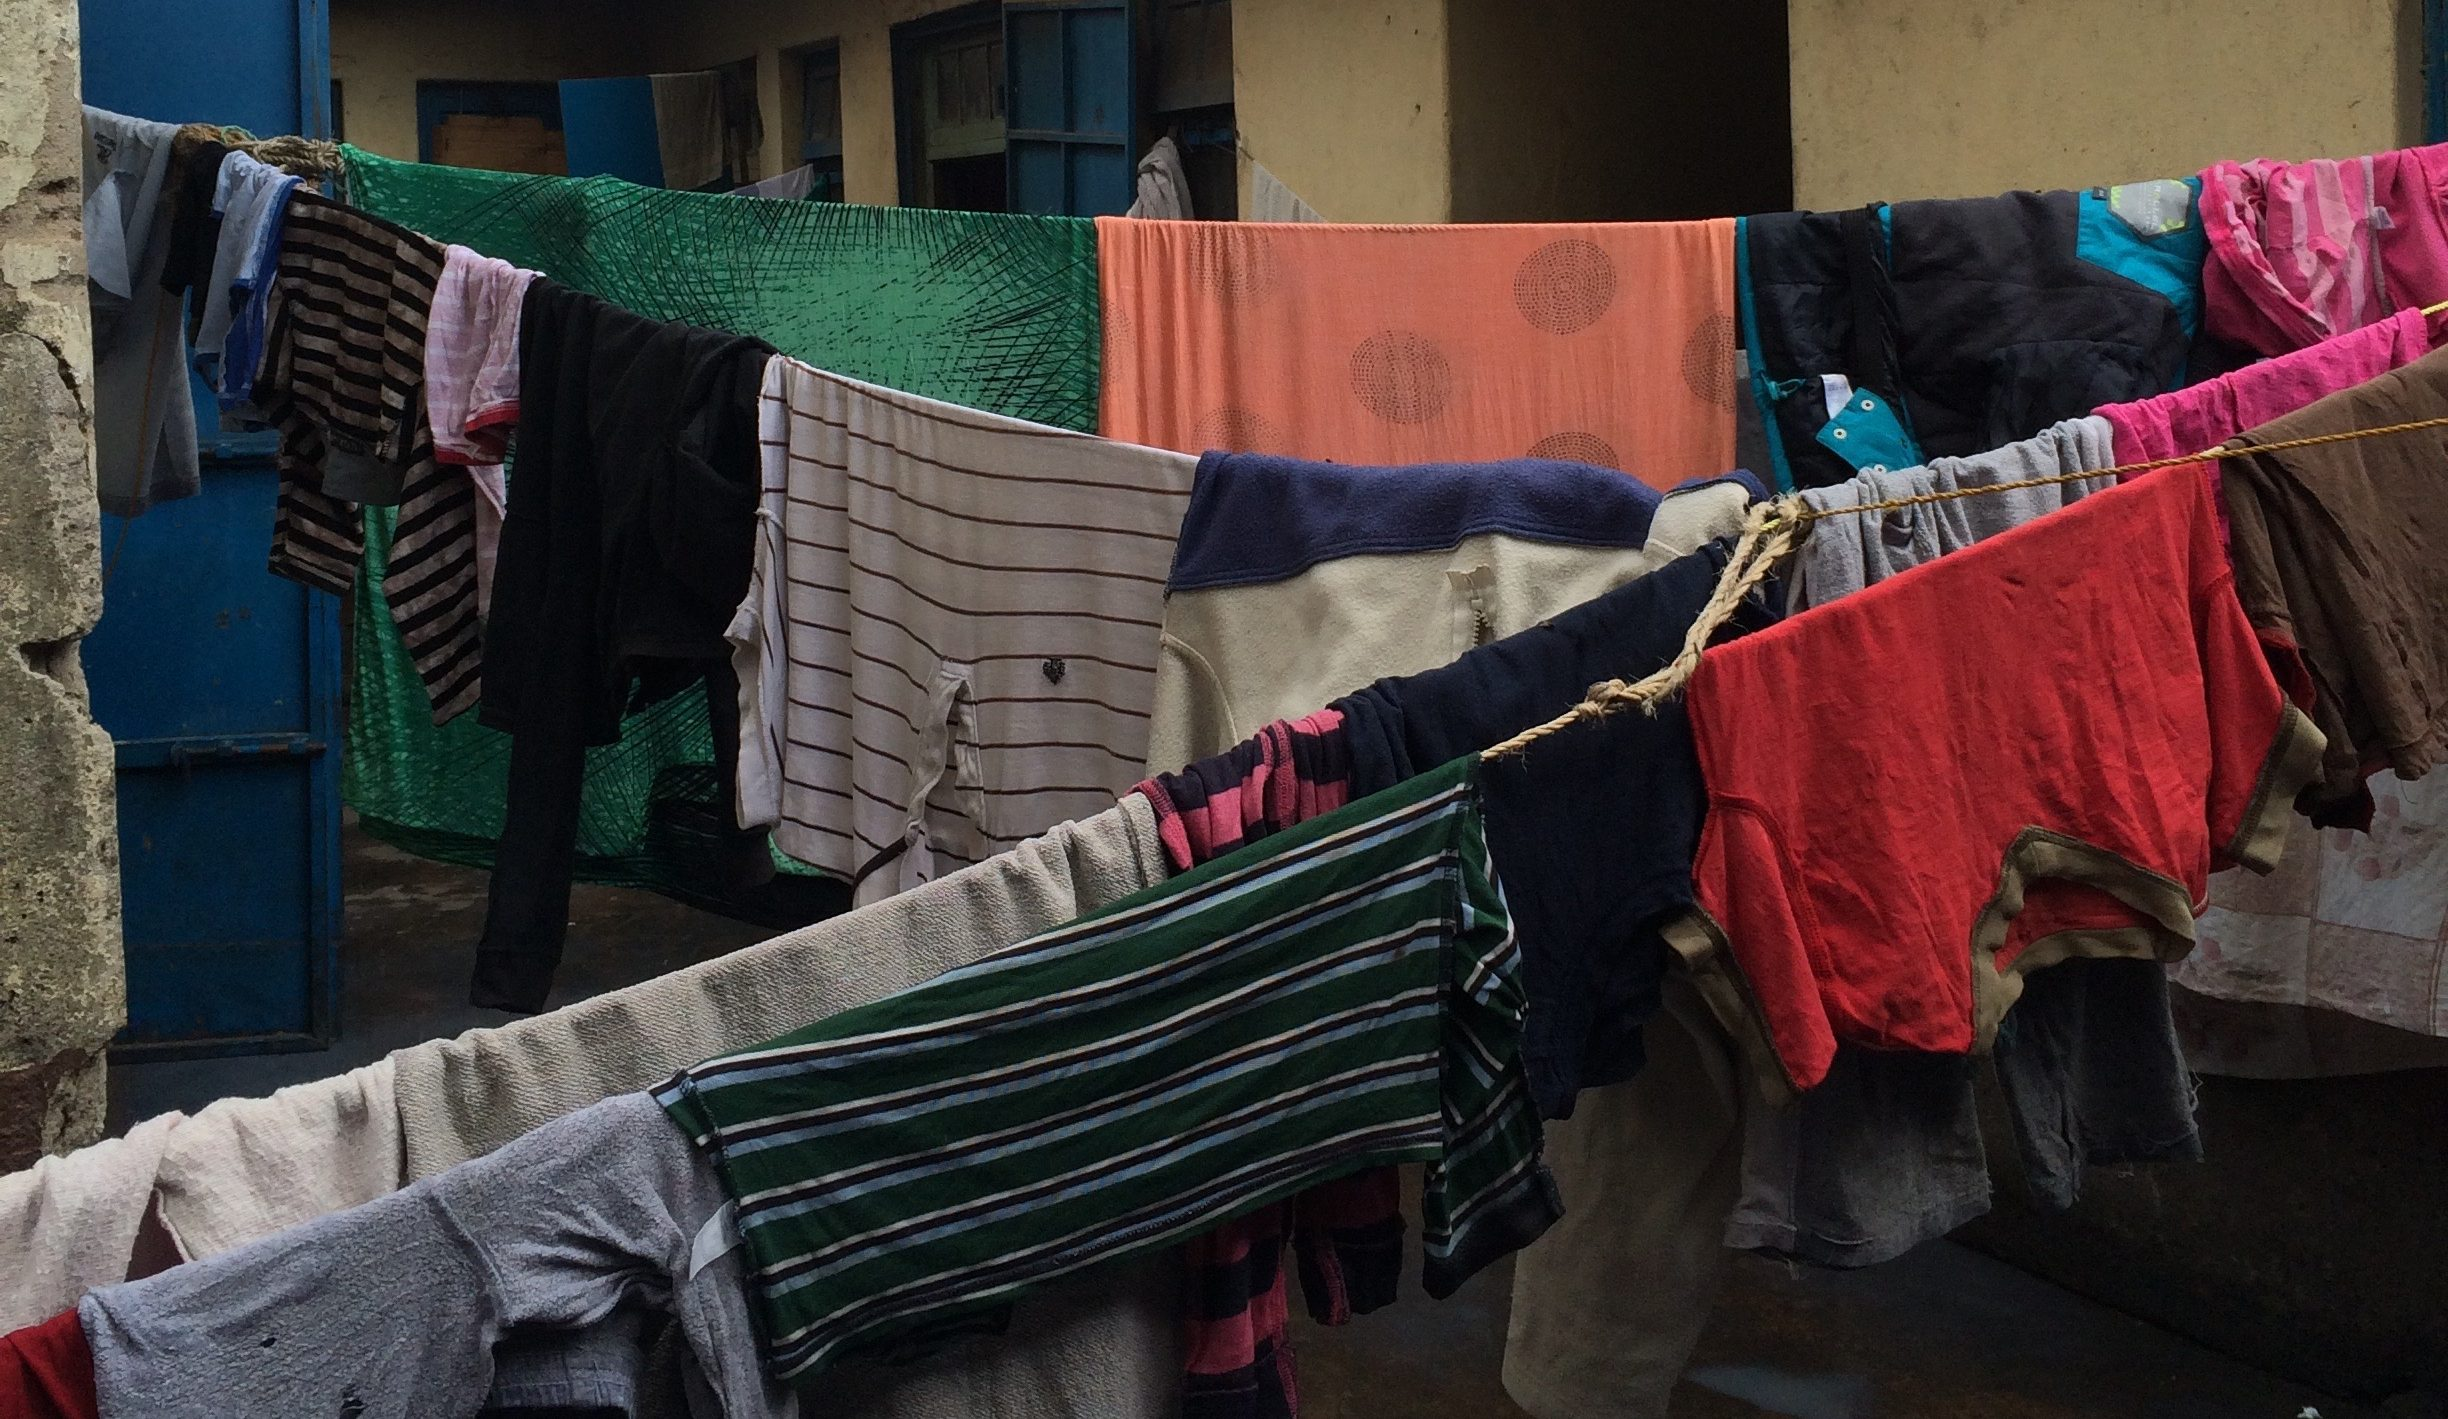 decorative image of laundy hanging out to dry in Nairobi